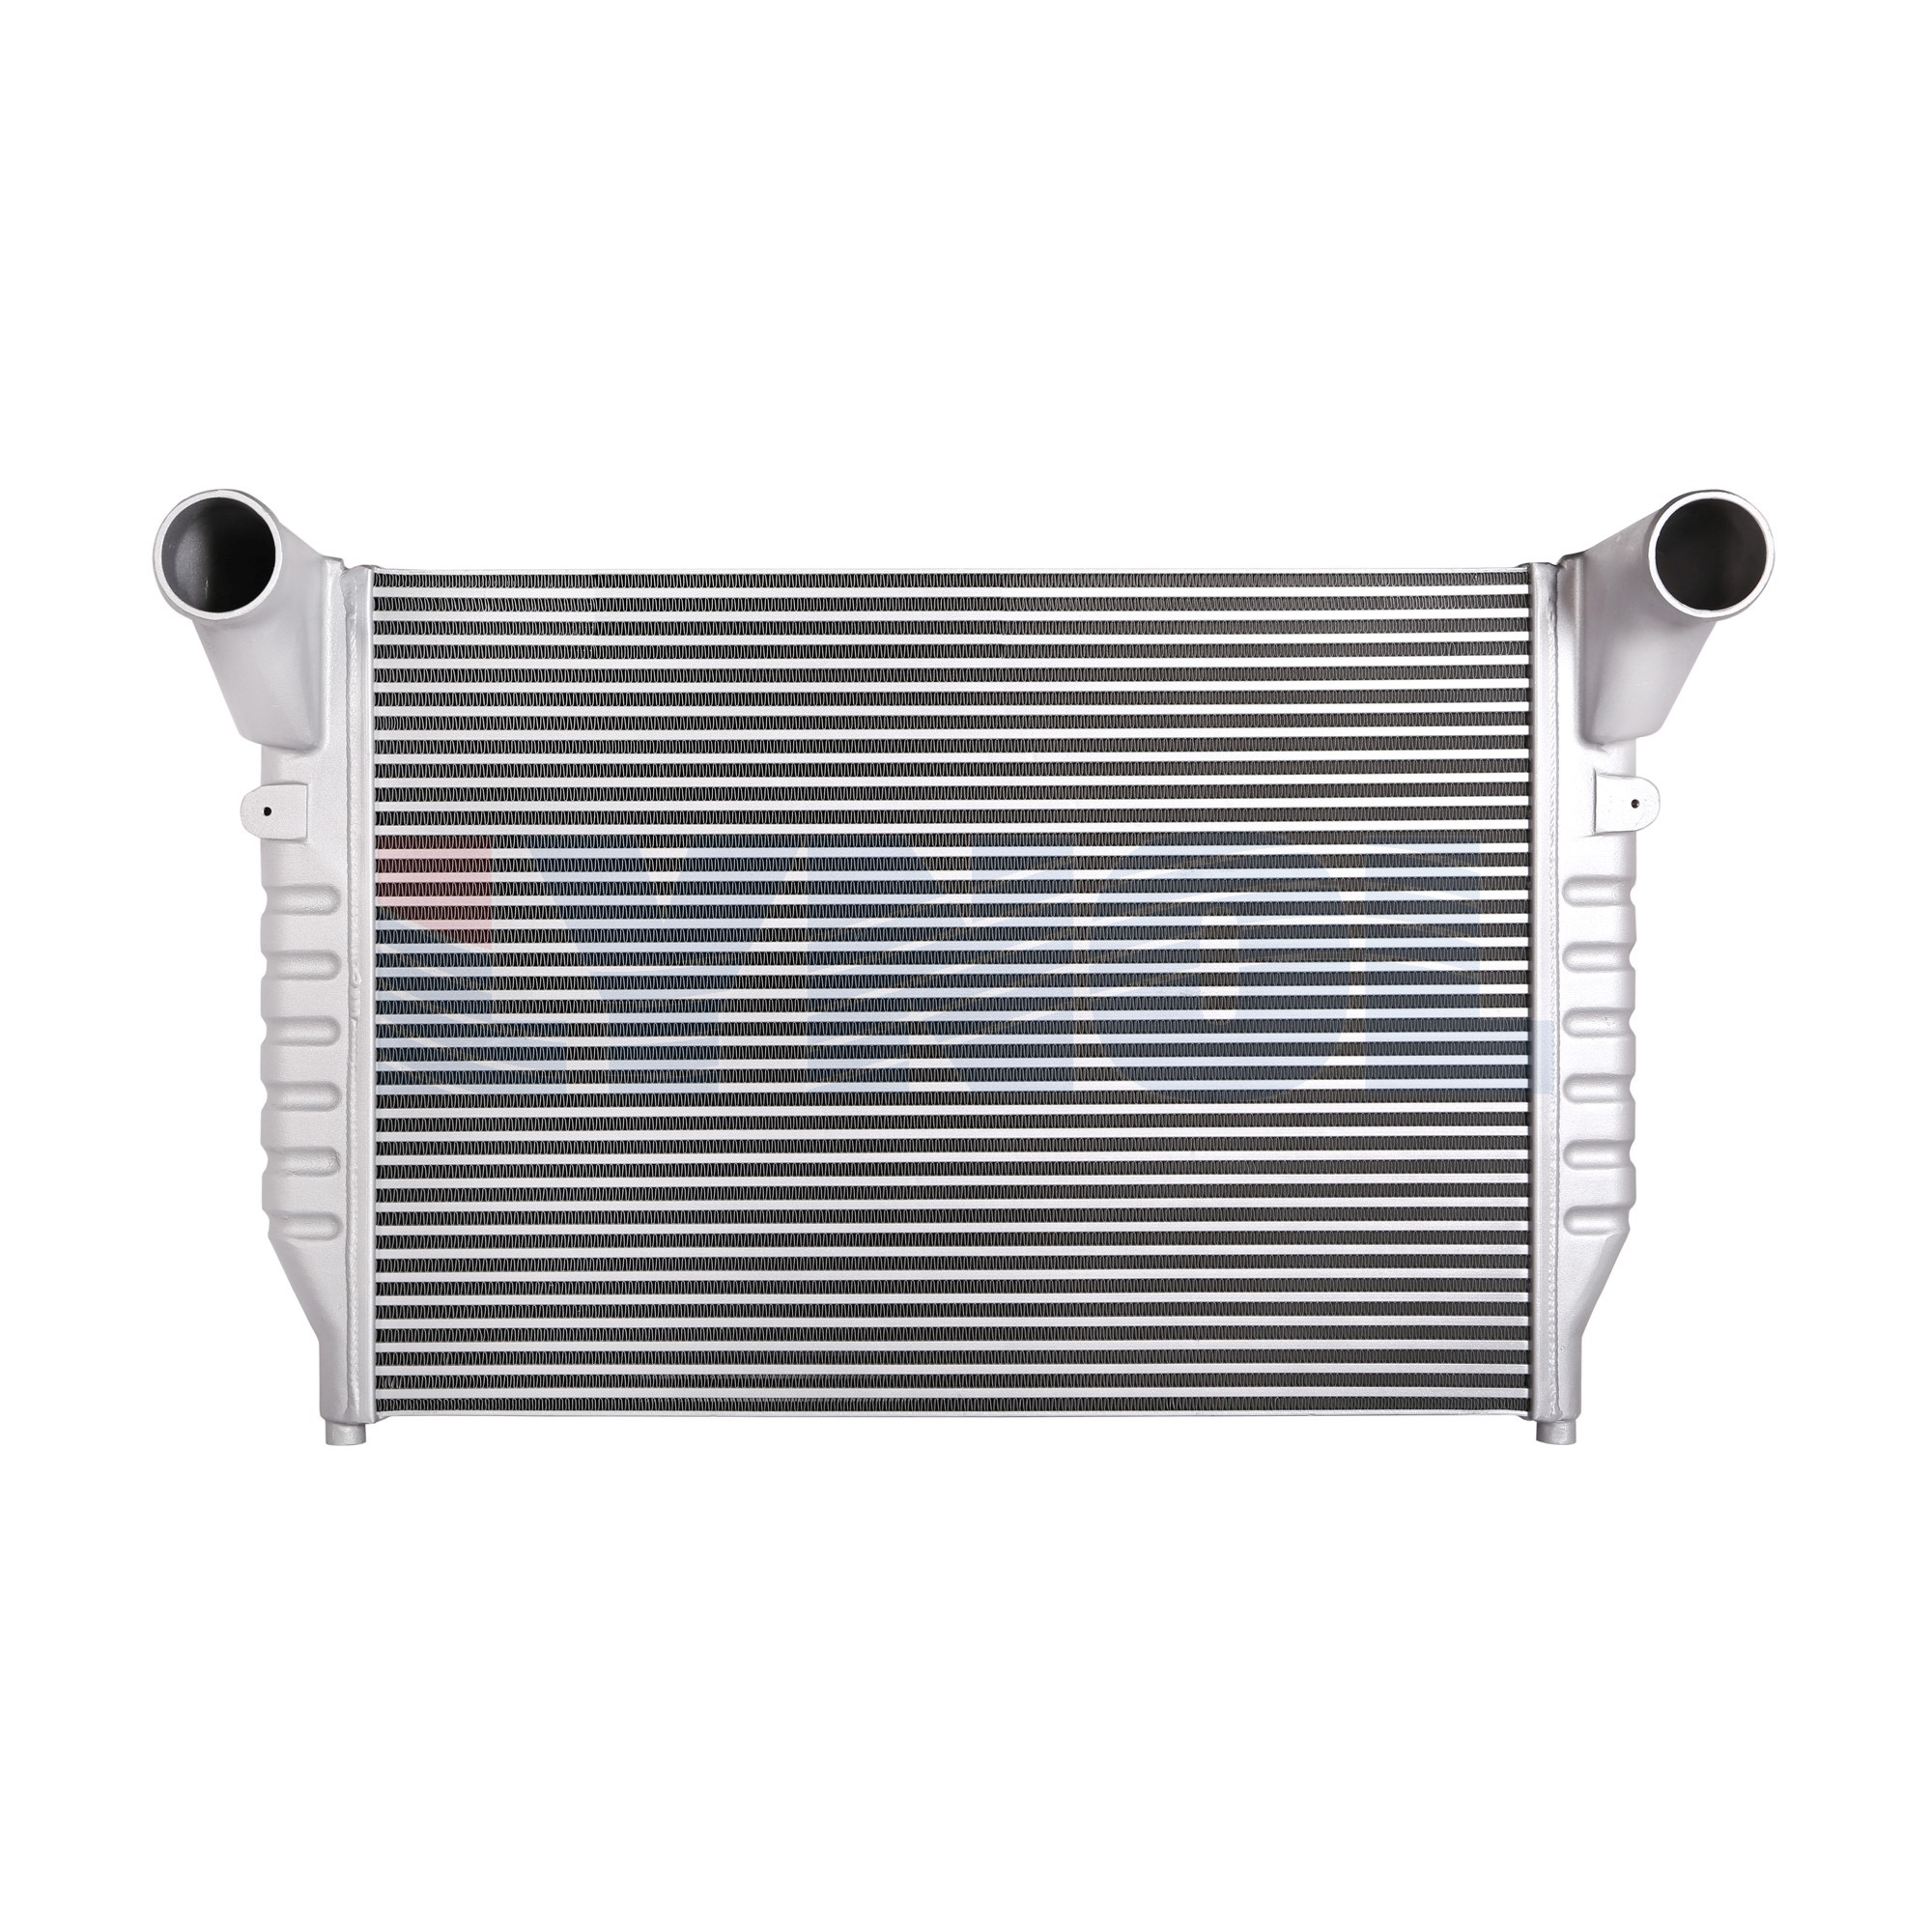 2413-003 - Mack Charge Air Cooler